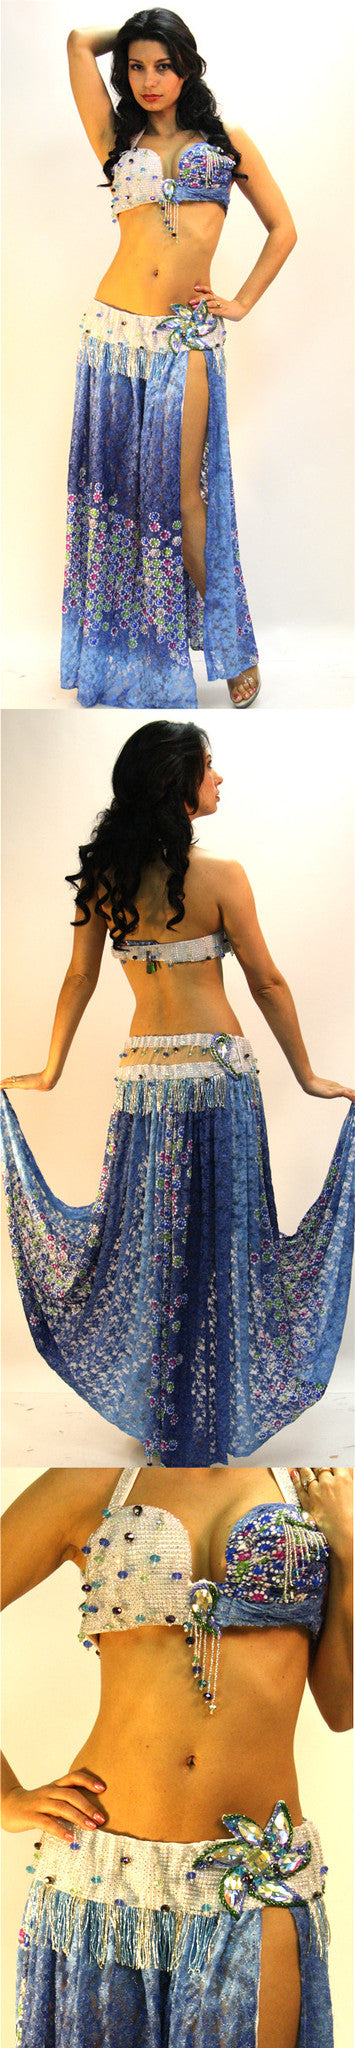 Nabila Two-Piece Costume